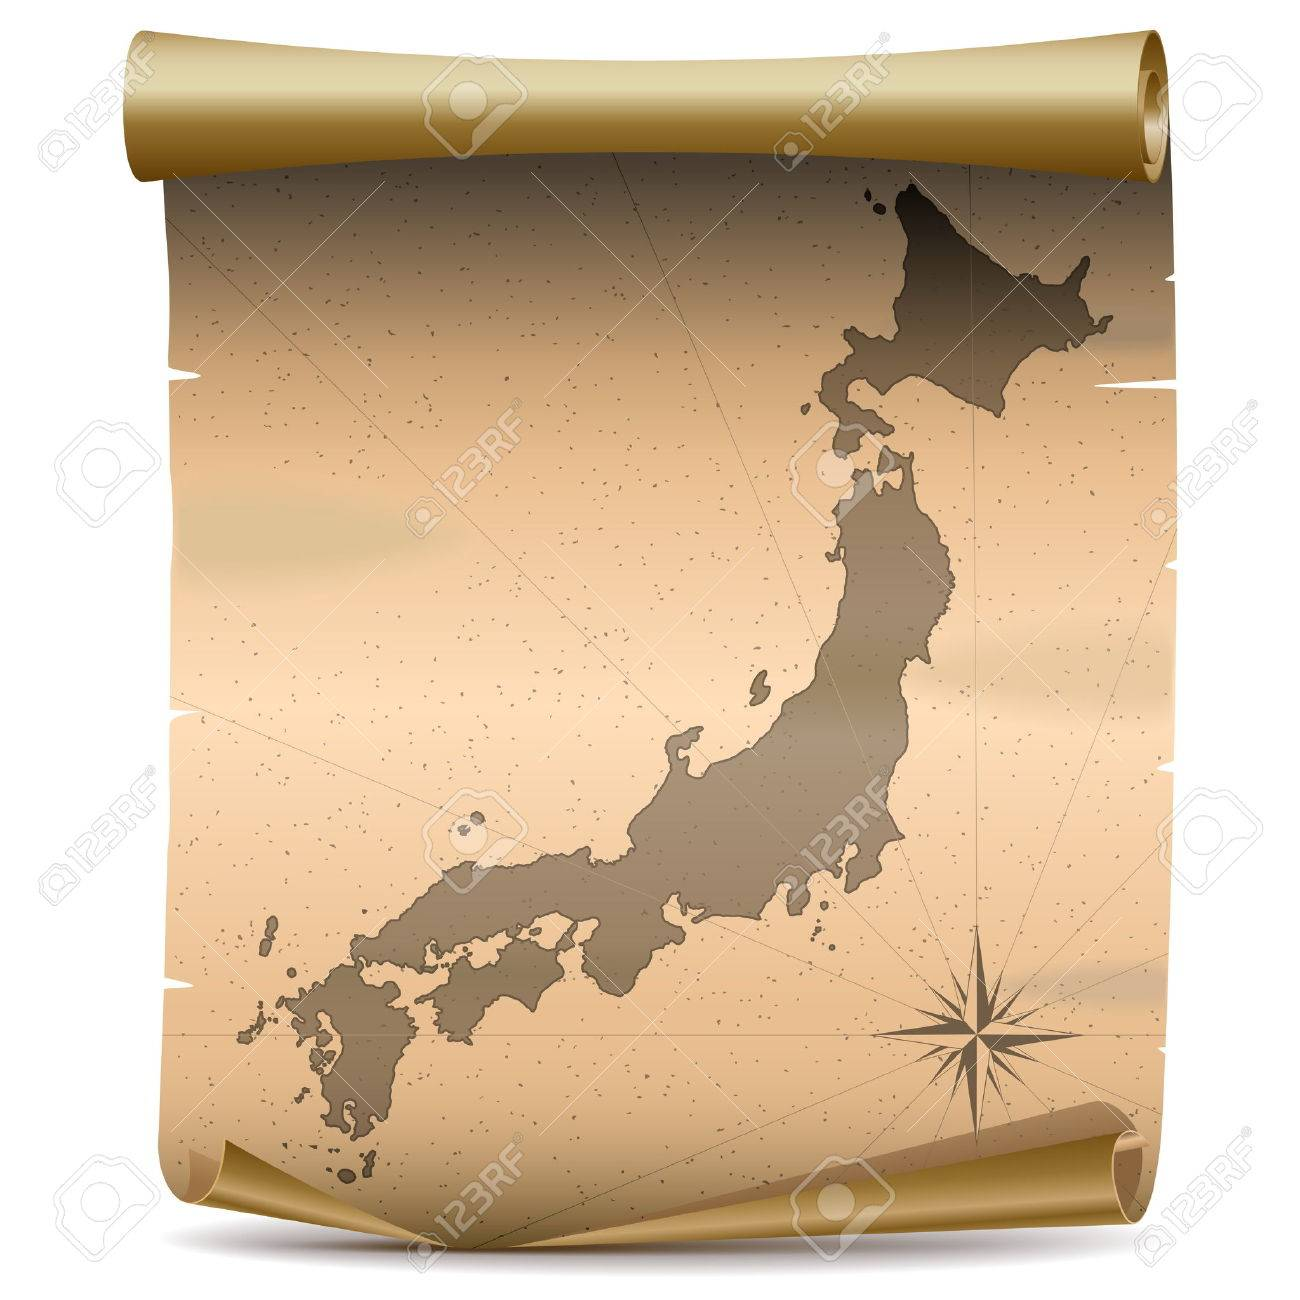 Vector Japan Vintage Map isolated on white background - 36250768